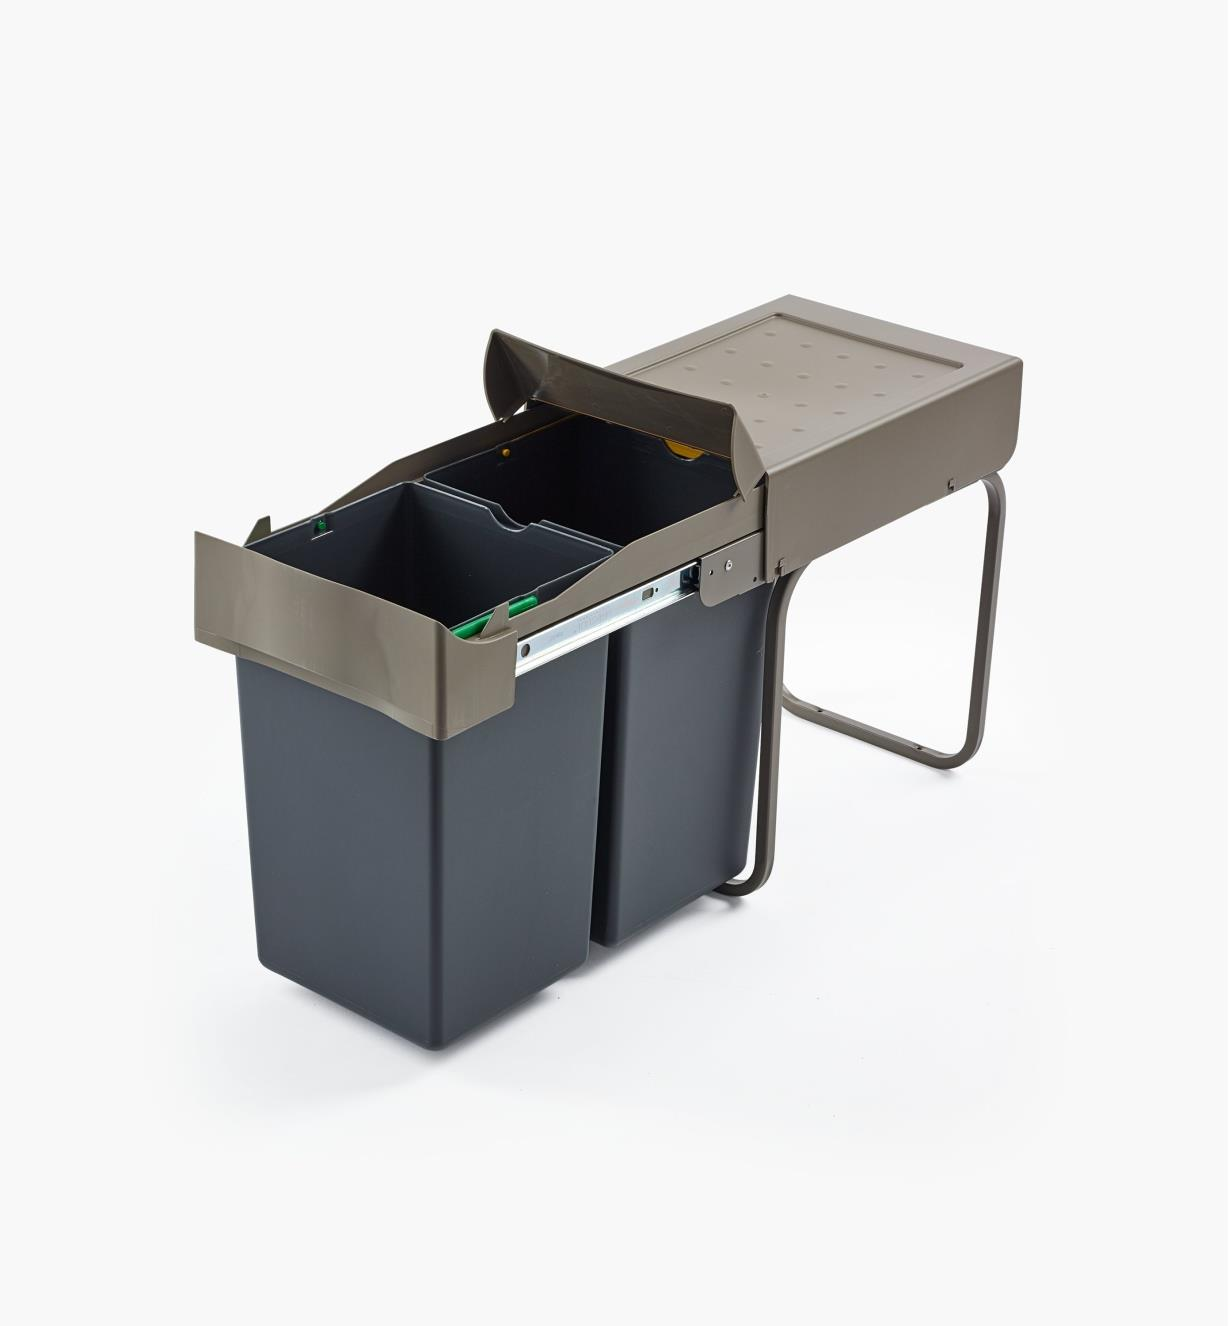 12K7820 - 28l Bottom-Mount Sliding Waste Container